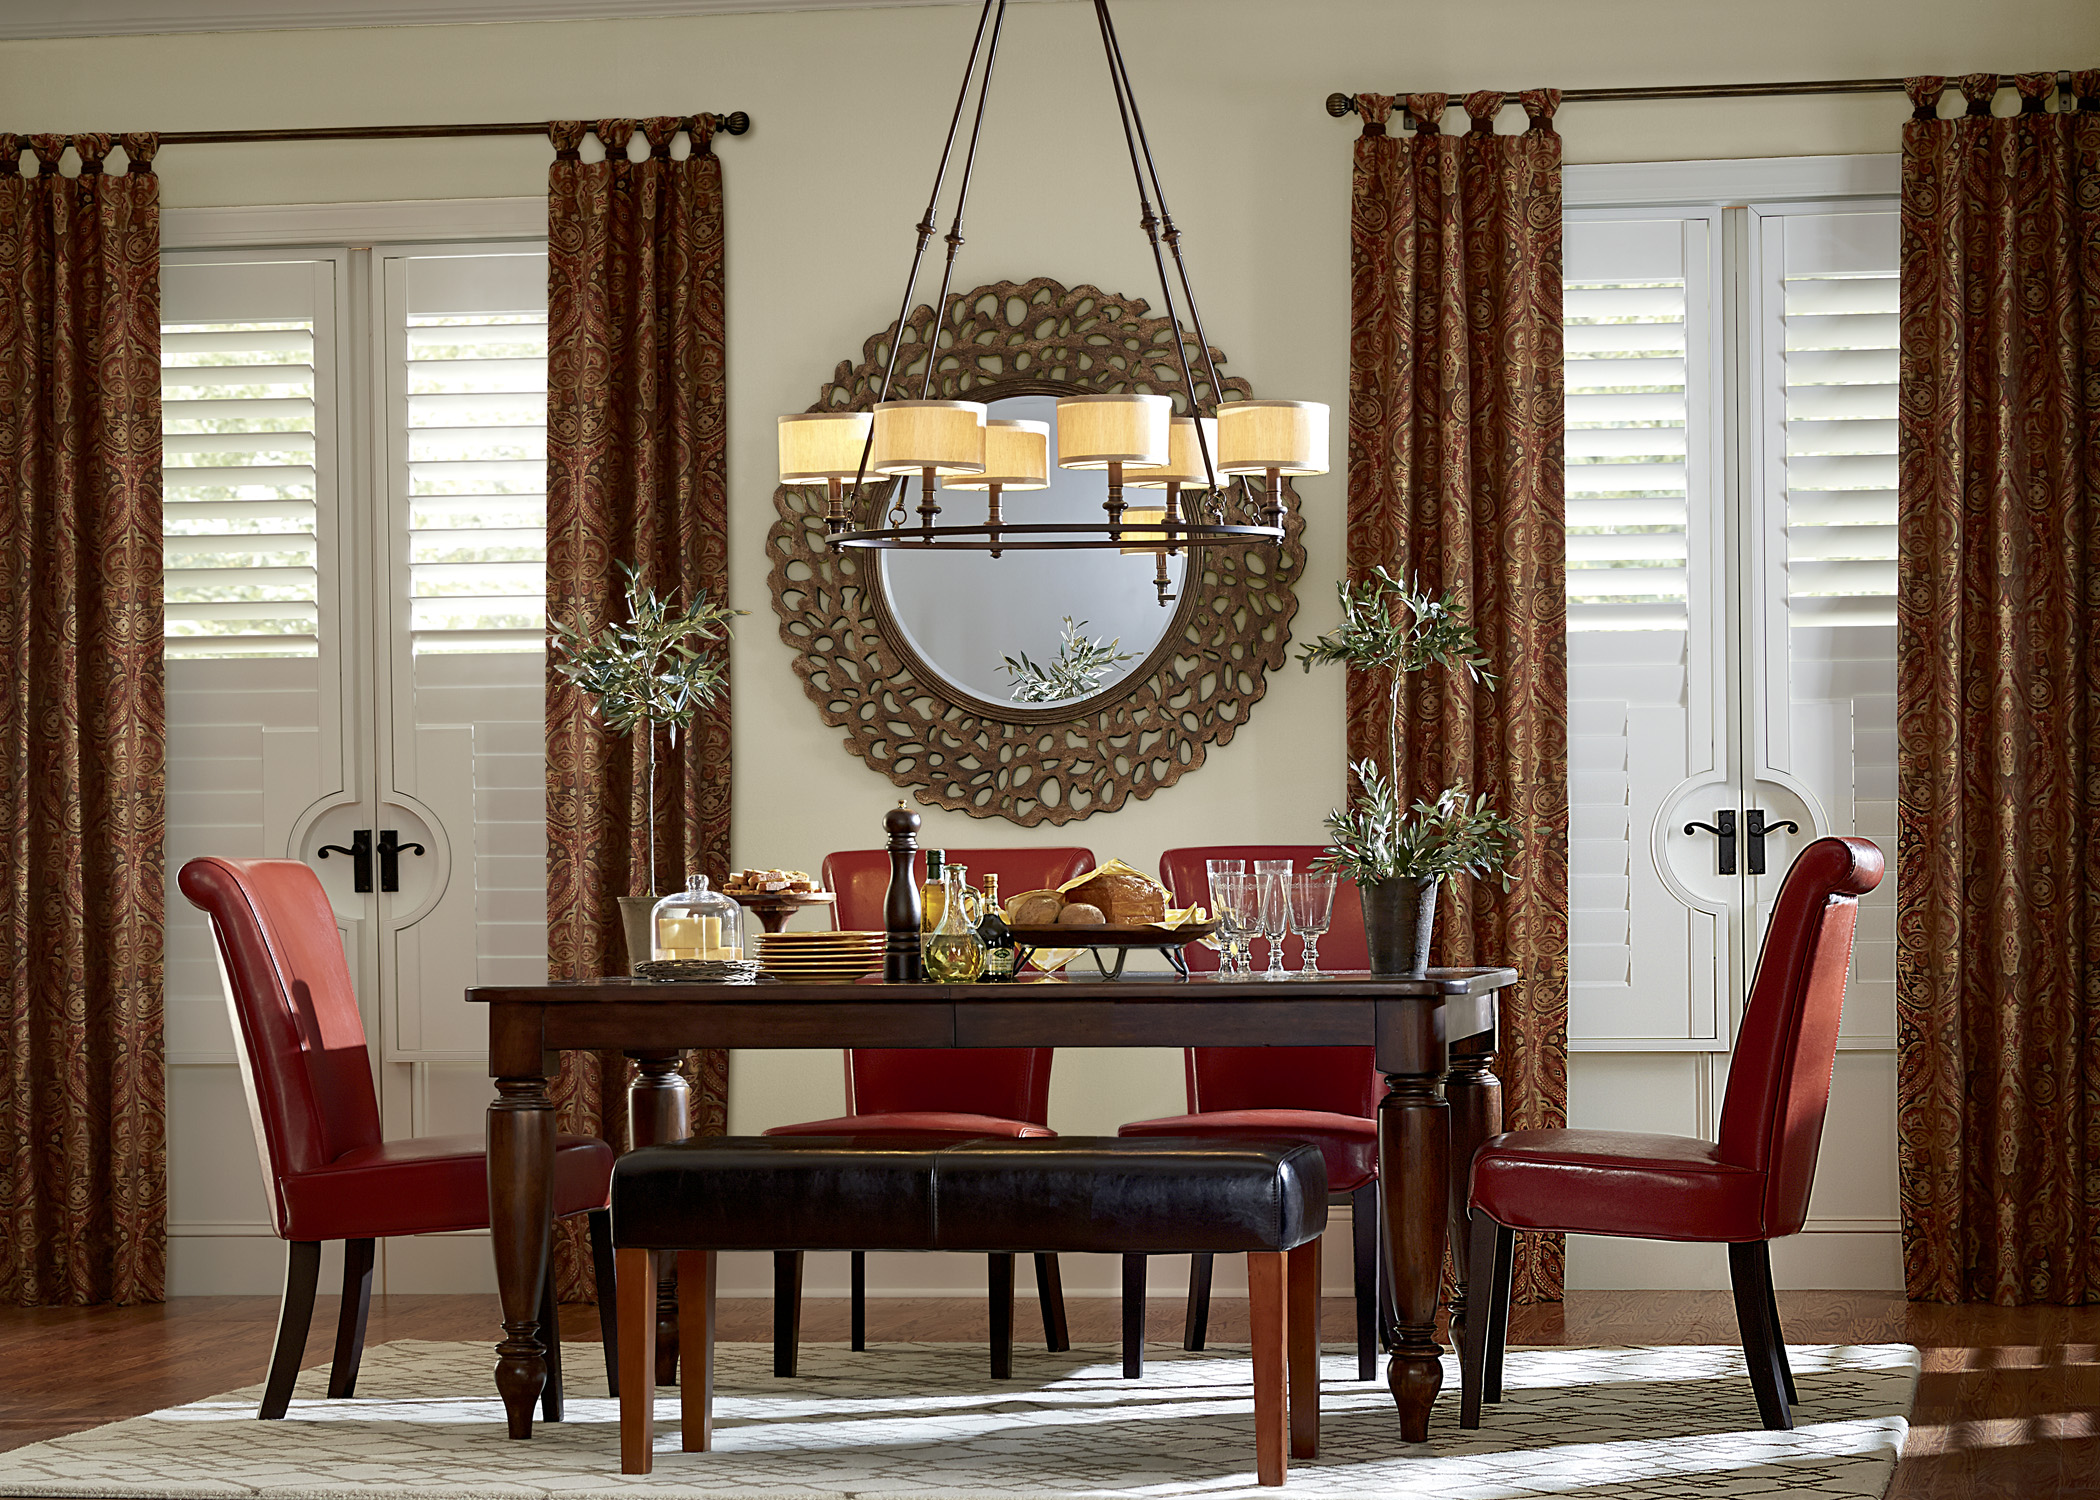 Composite Shutters in Dining Room